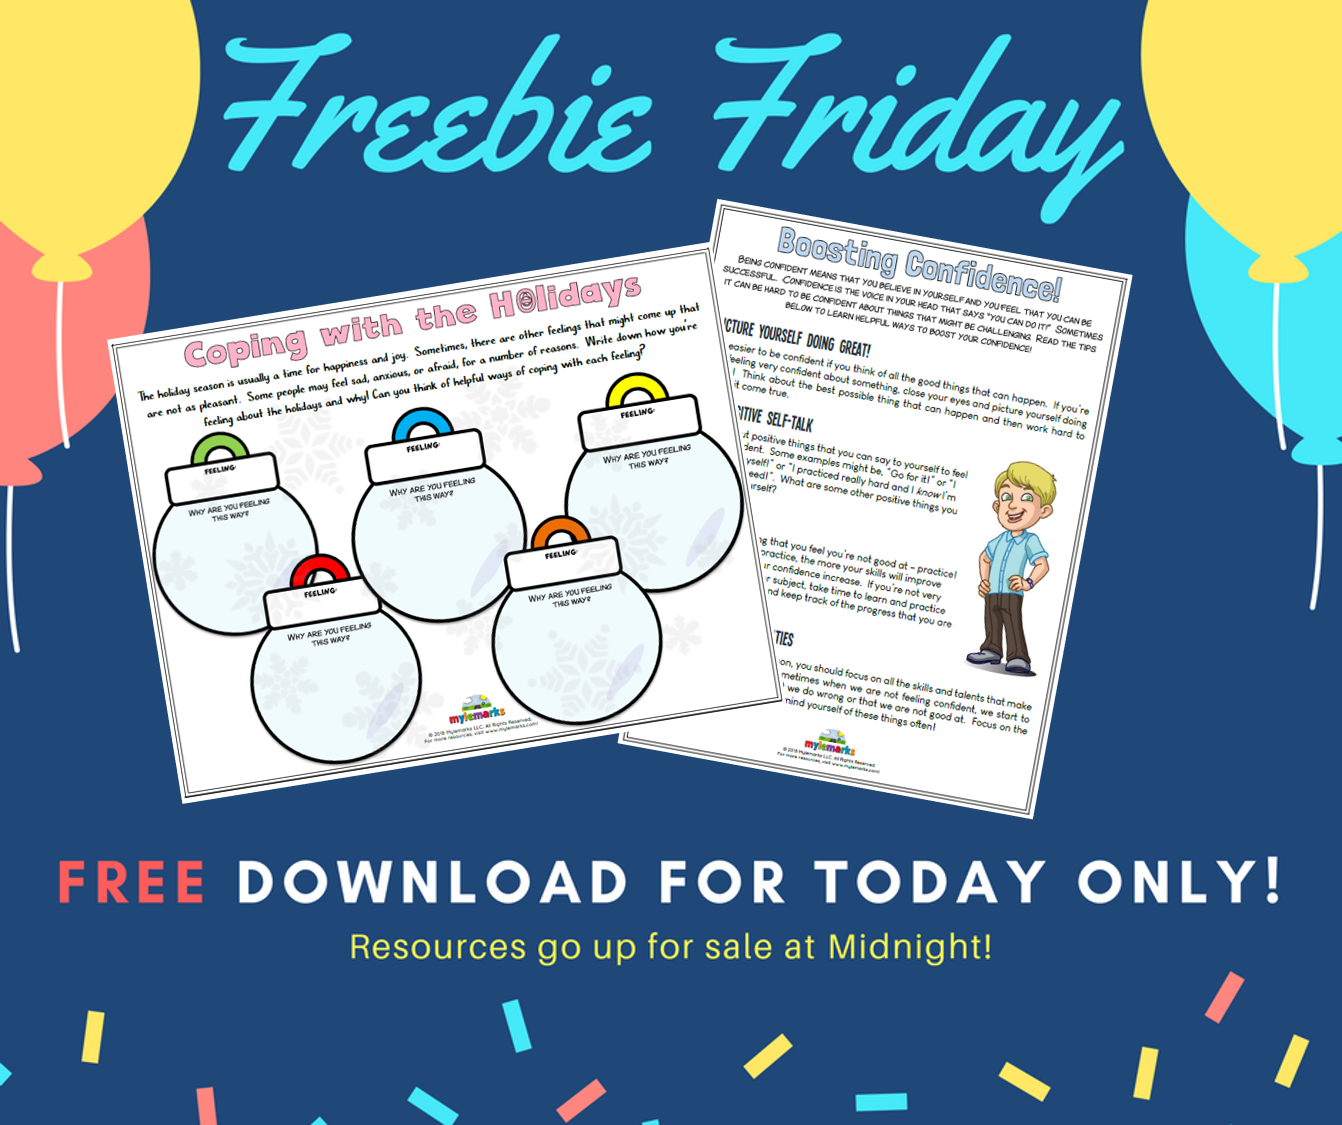 Freebie Friday Free Download For Today Only Coping